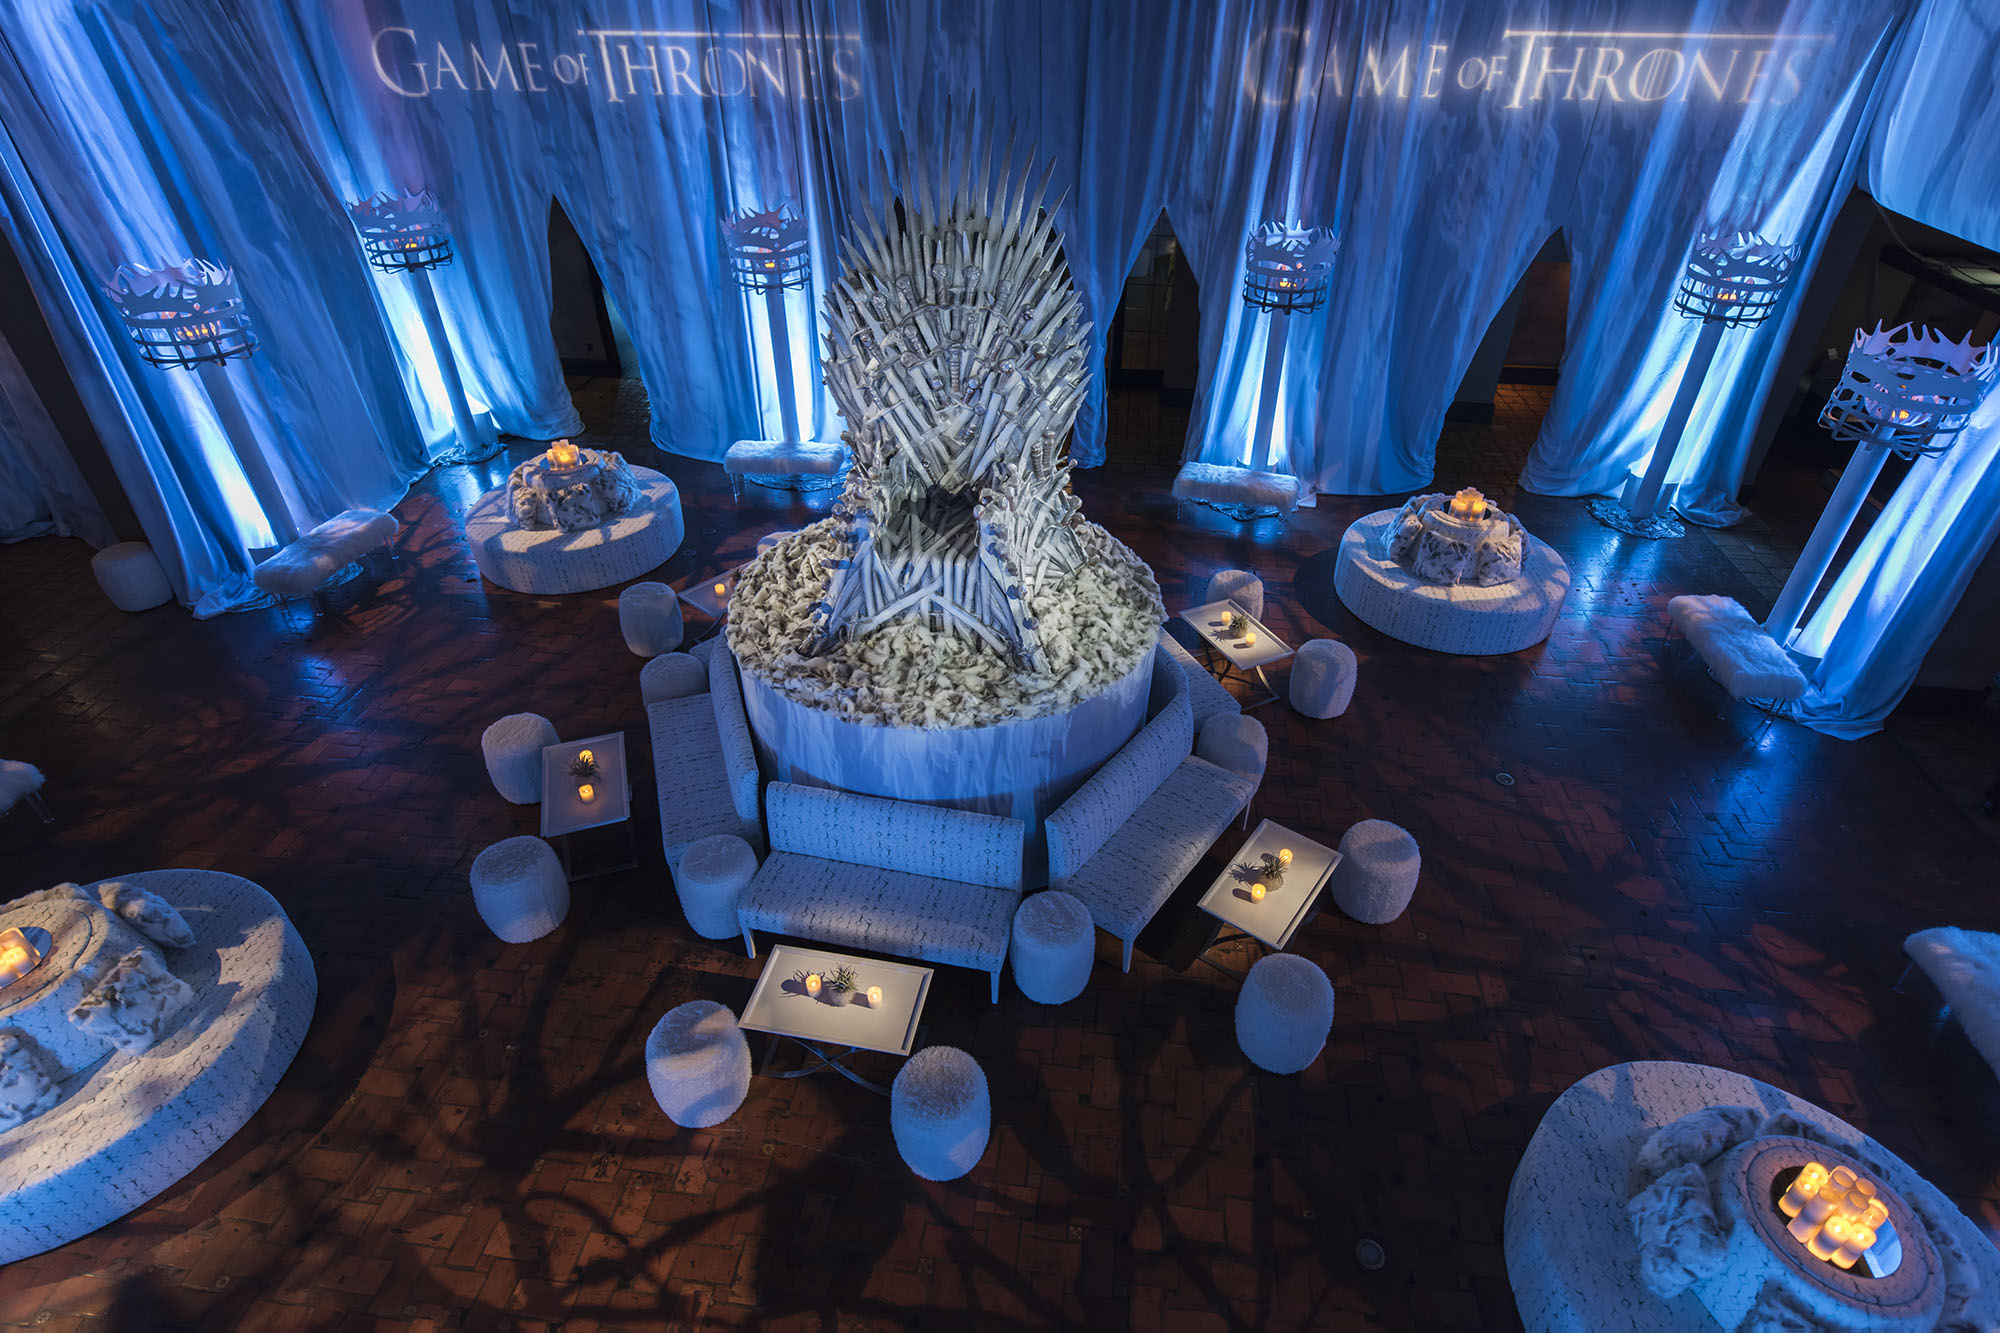 Game of Thrones Premiere, Season 6 - Images By Lighting